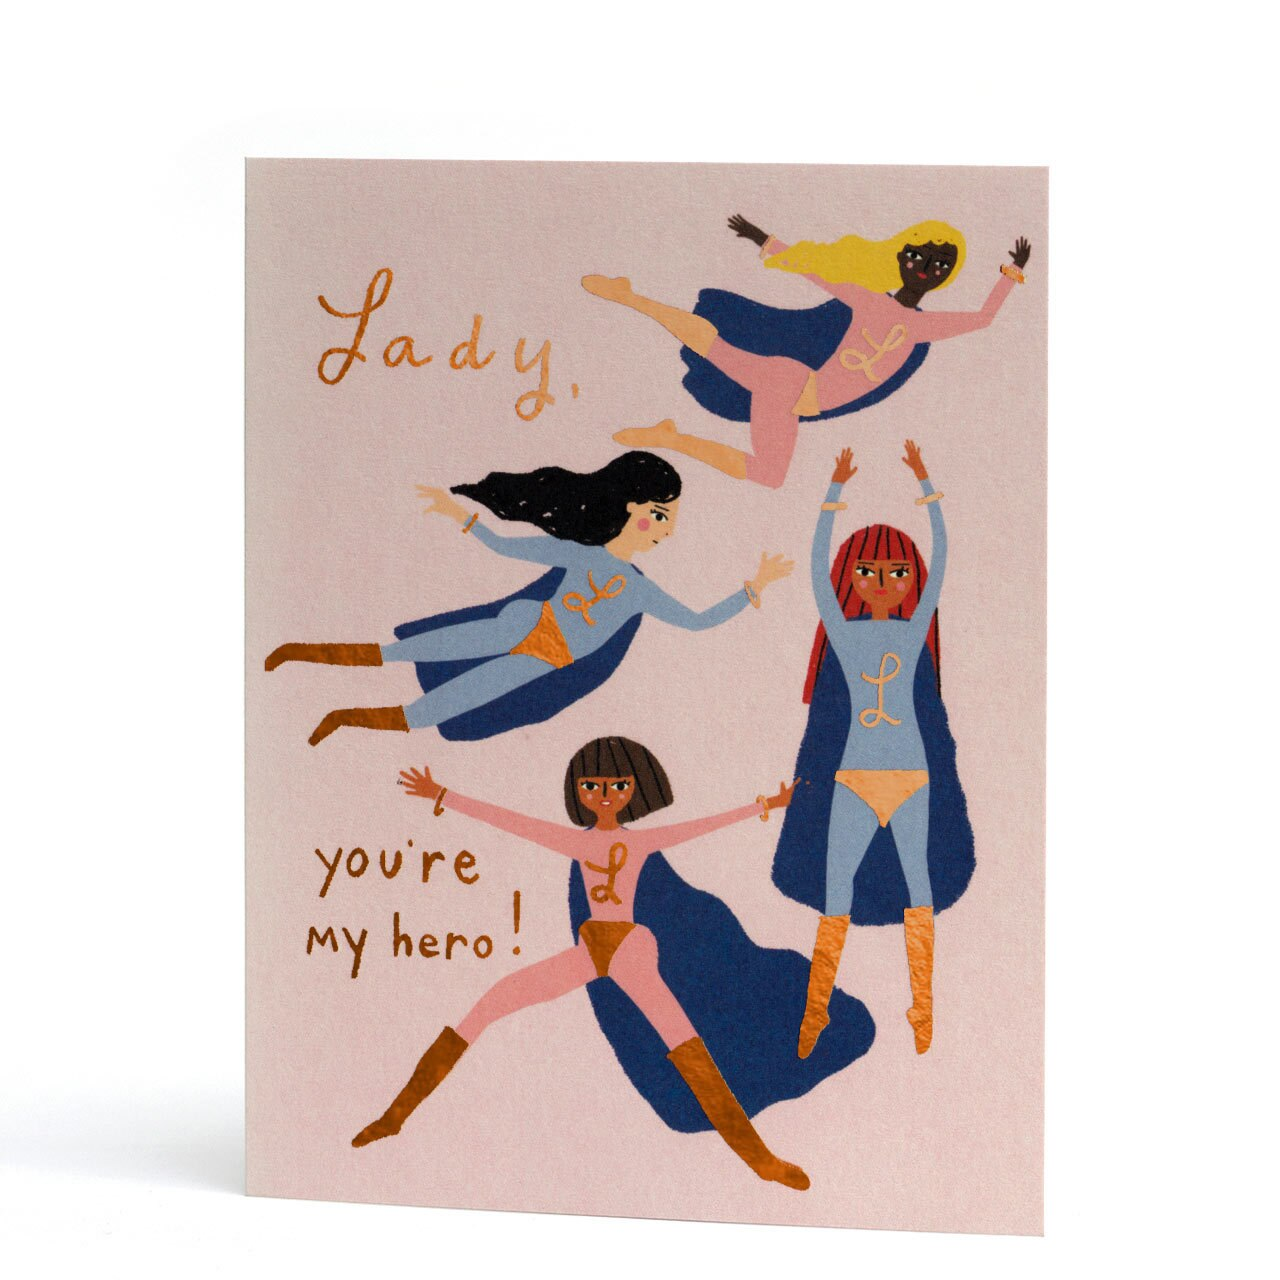 Lady You're My Hero Copper Foil Greeting Card